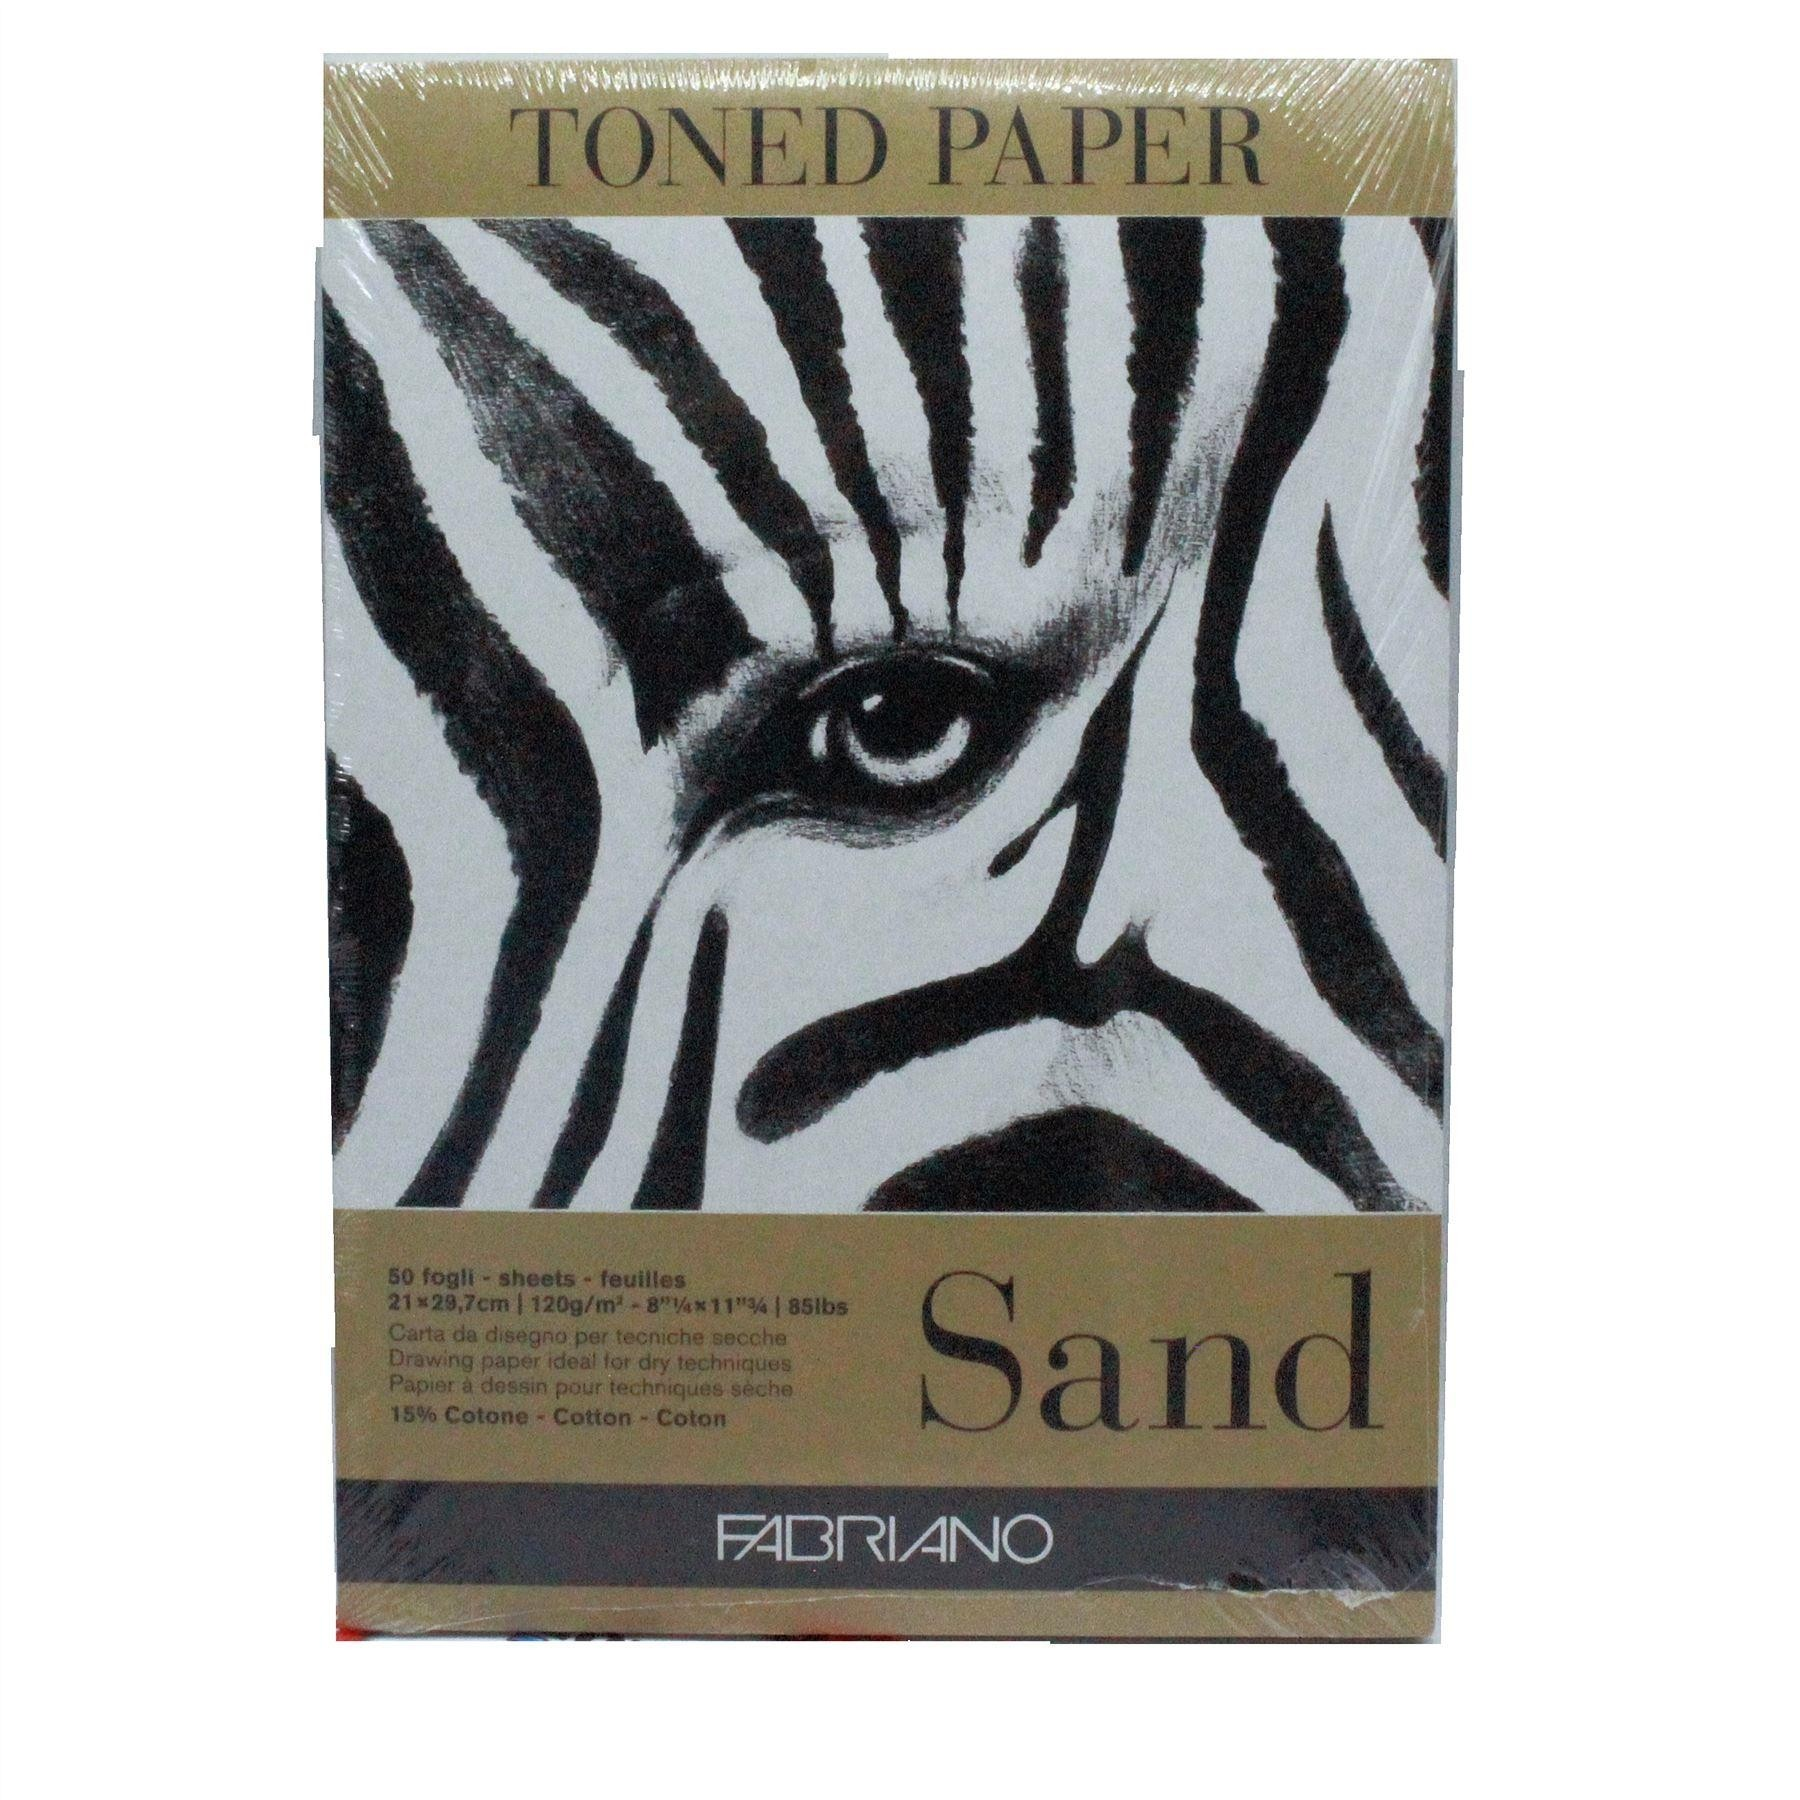 Fabriano toned paper sand colour pad A4 120gsm 50 sheets